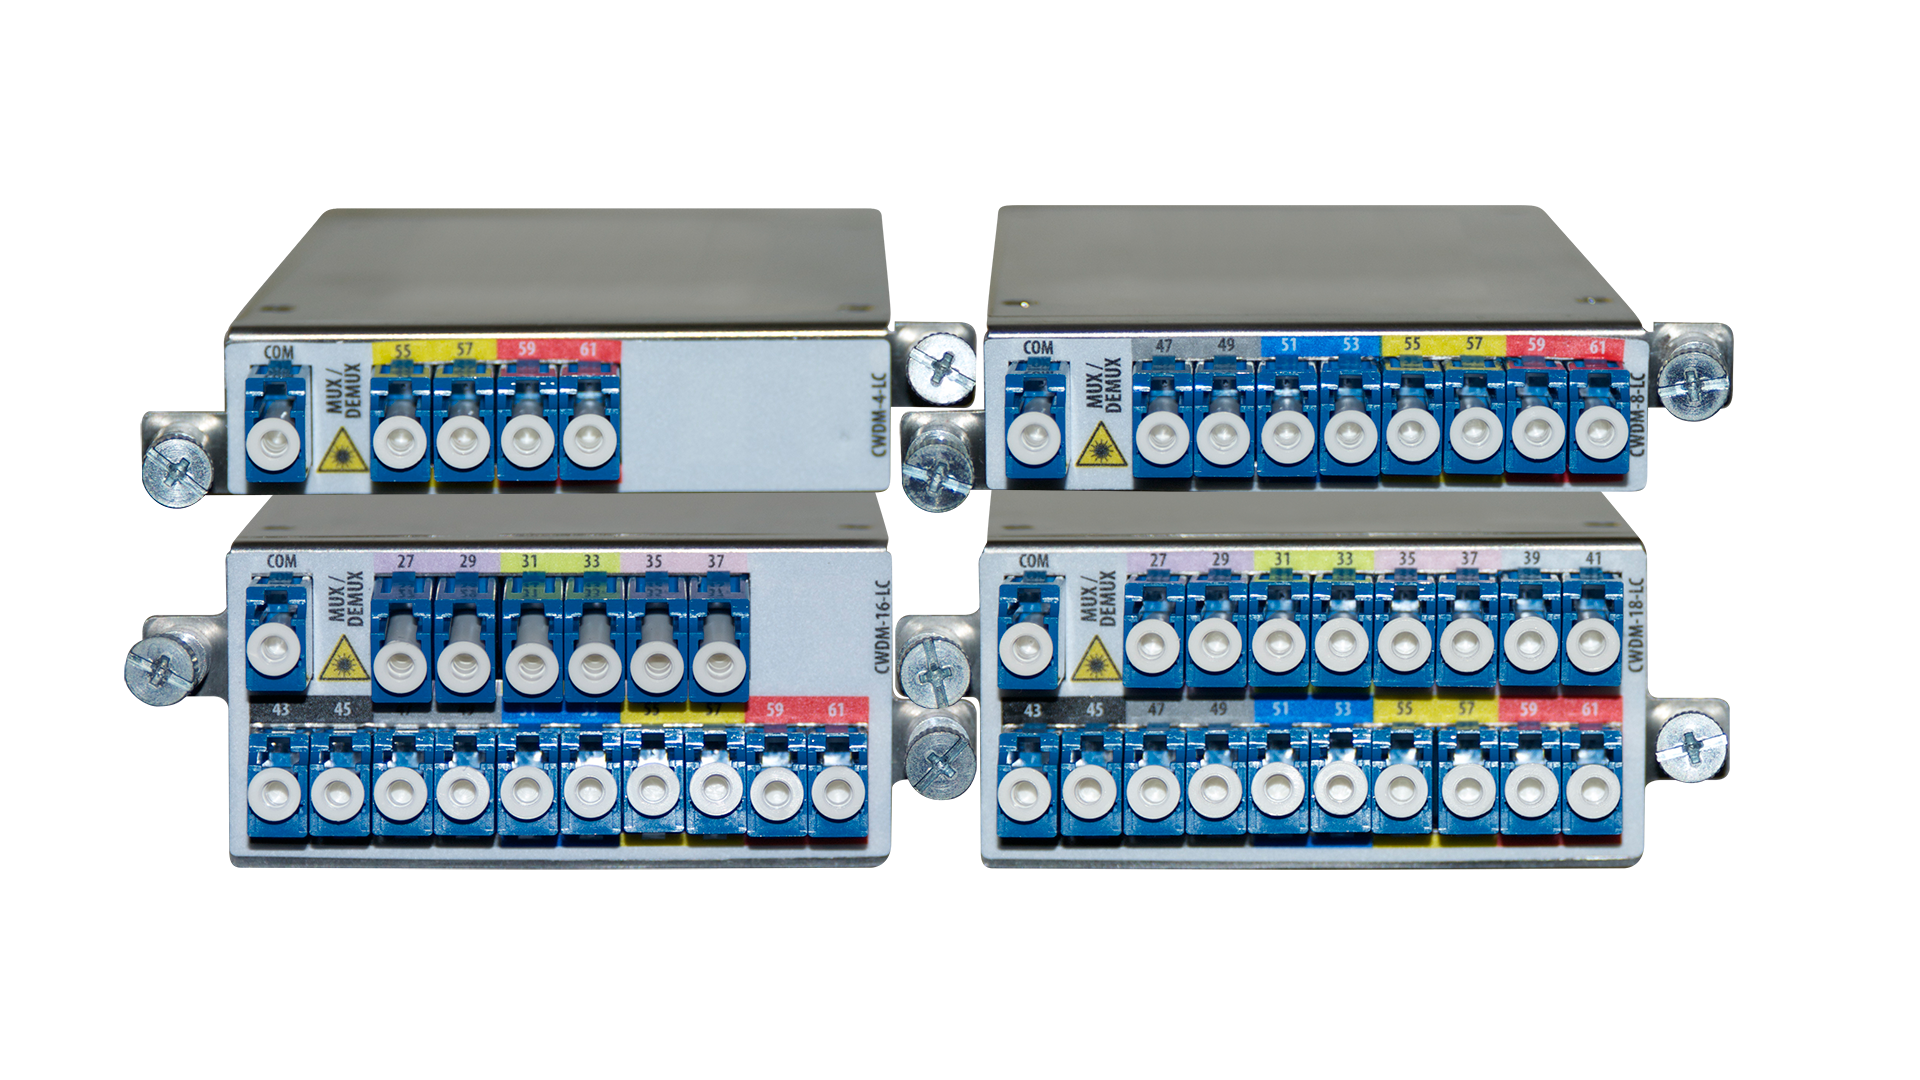 CWDM Optical Modules